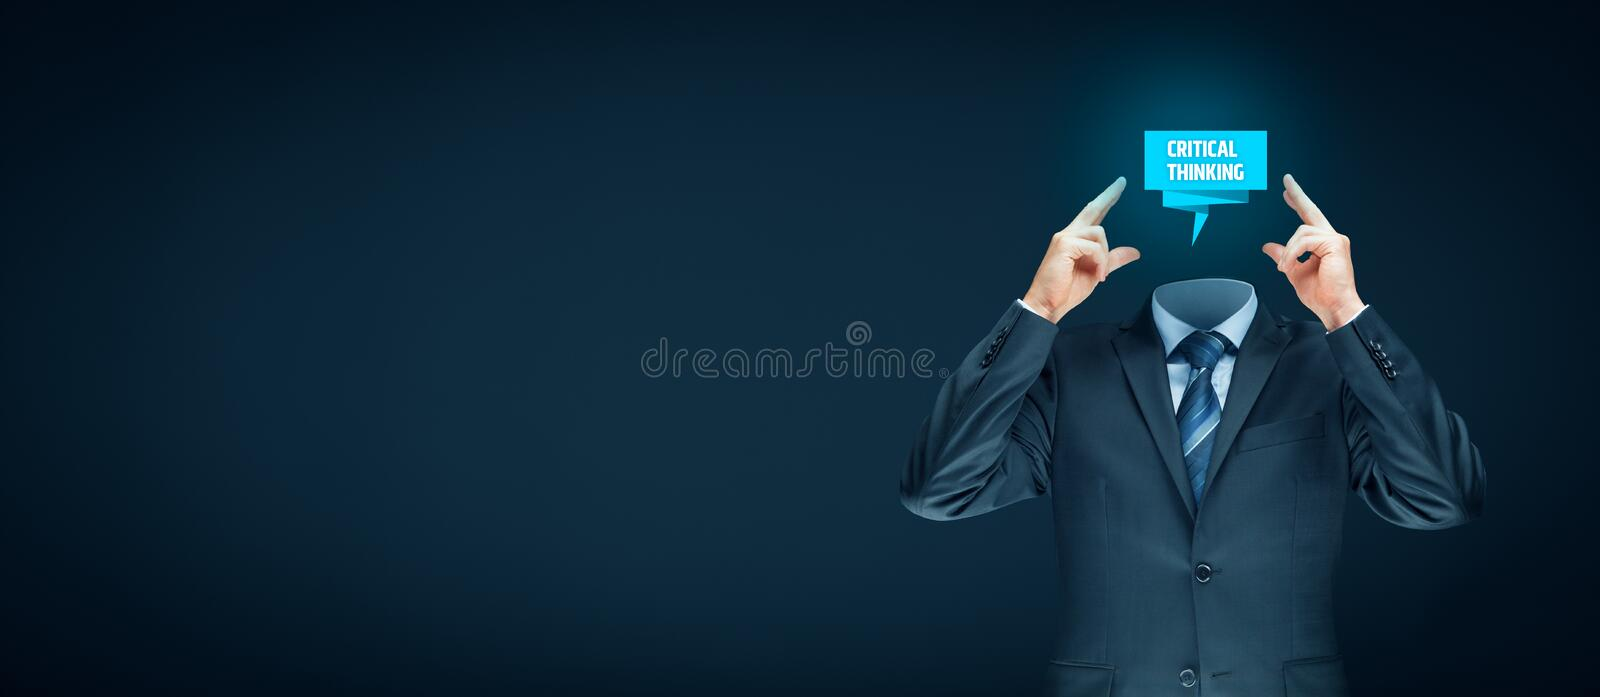 Critical thinking concept stock photography